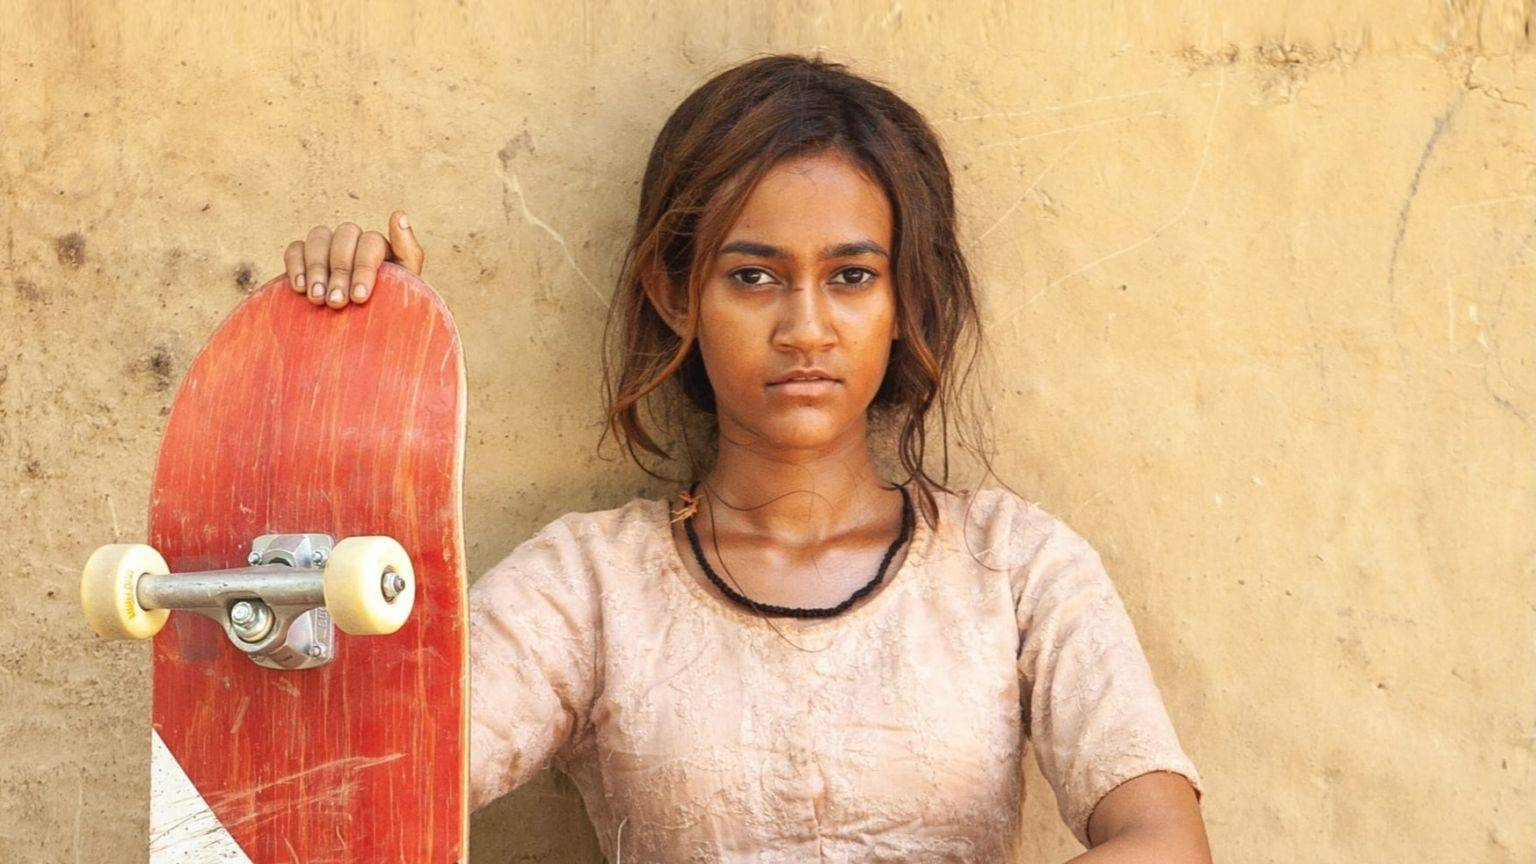 Skater Girl is a heartfelt film that takes the idea of someone pursuing a sports dream to the next level.